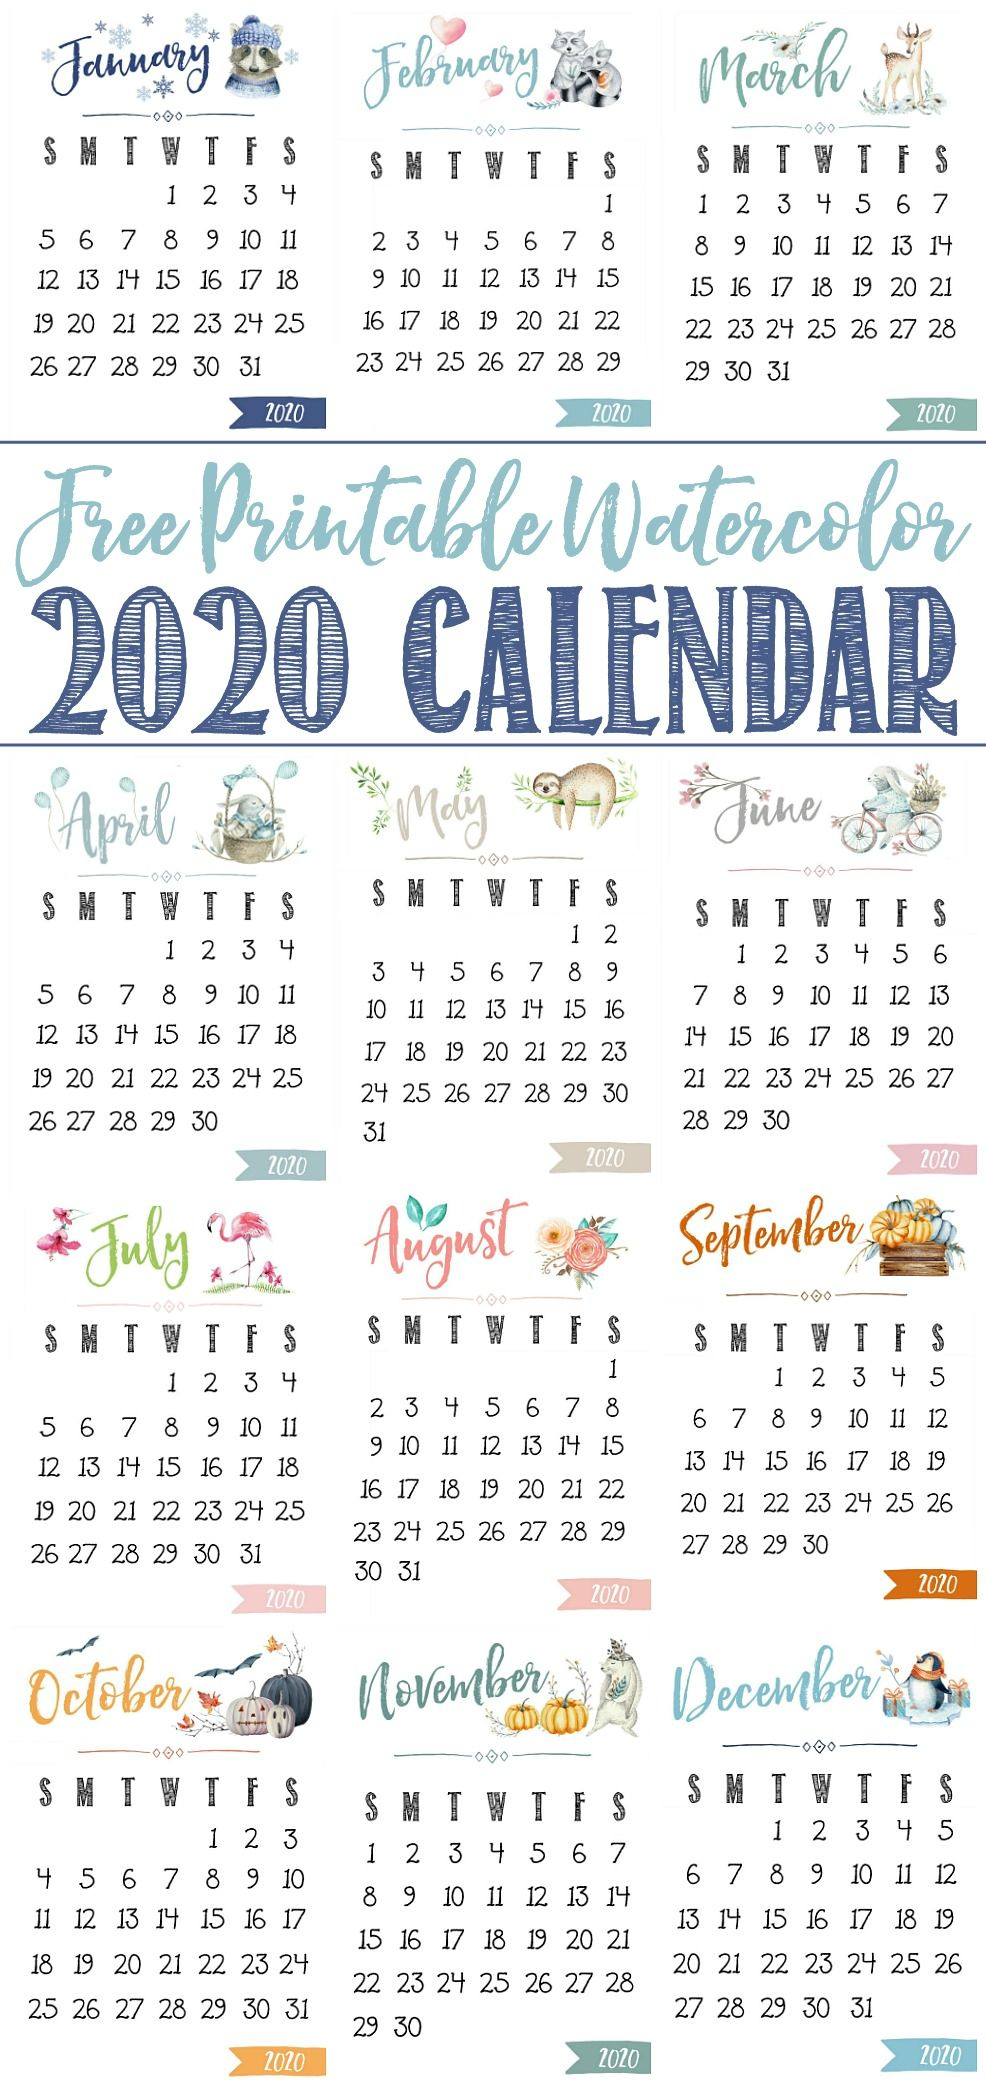 Free Printable 2020 Calendar Clean And Scentsible Calendar Printables Free Printable Calendar Printable Calendar